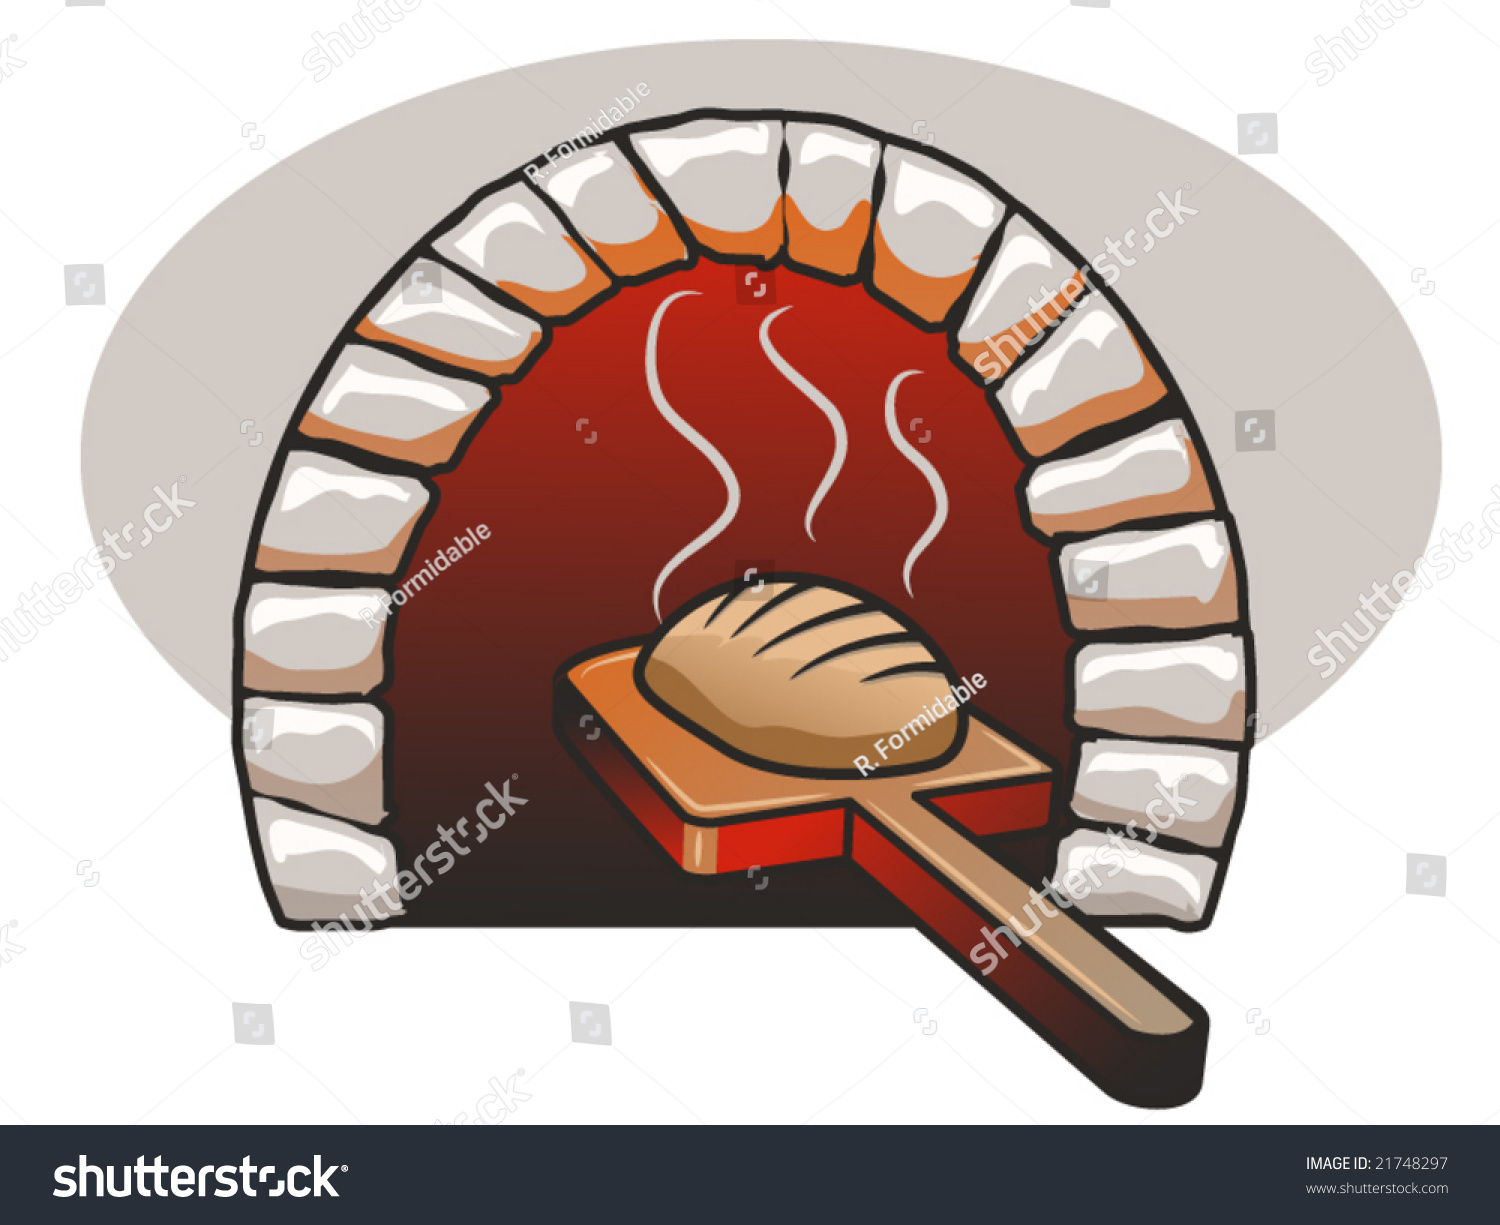 Stone Bread Baking in Oven Clip Art